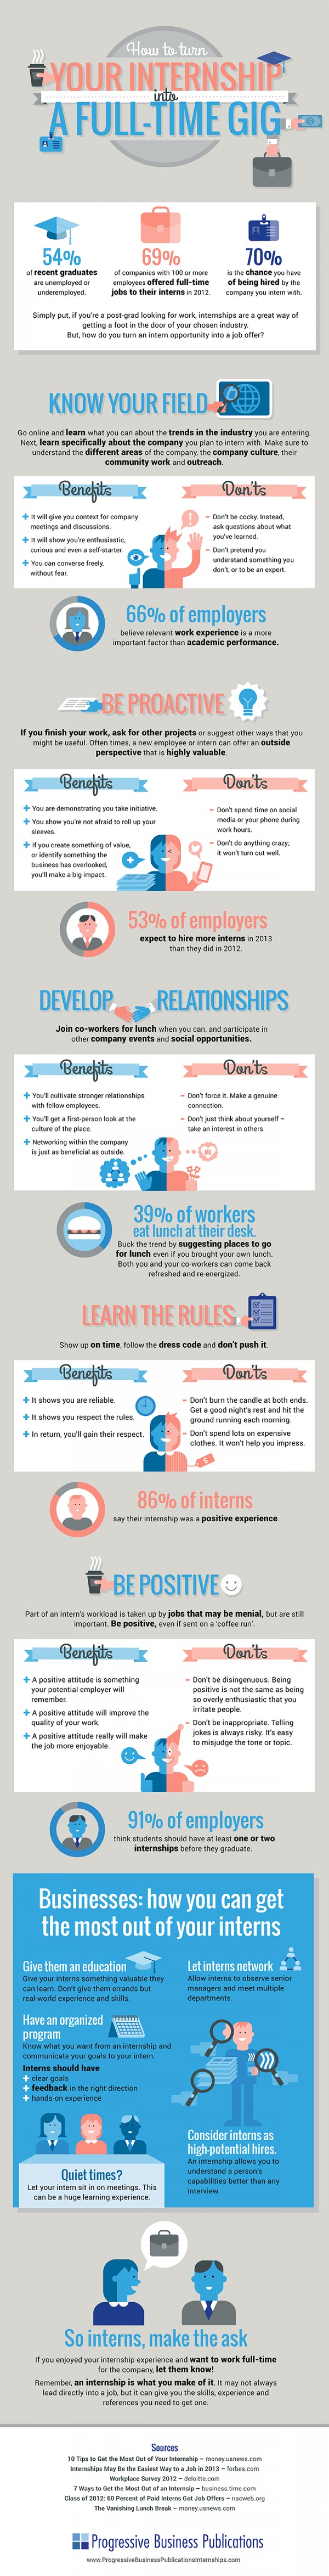 How to Turn Your Internship Into A Full-Time Gig Infographic